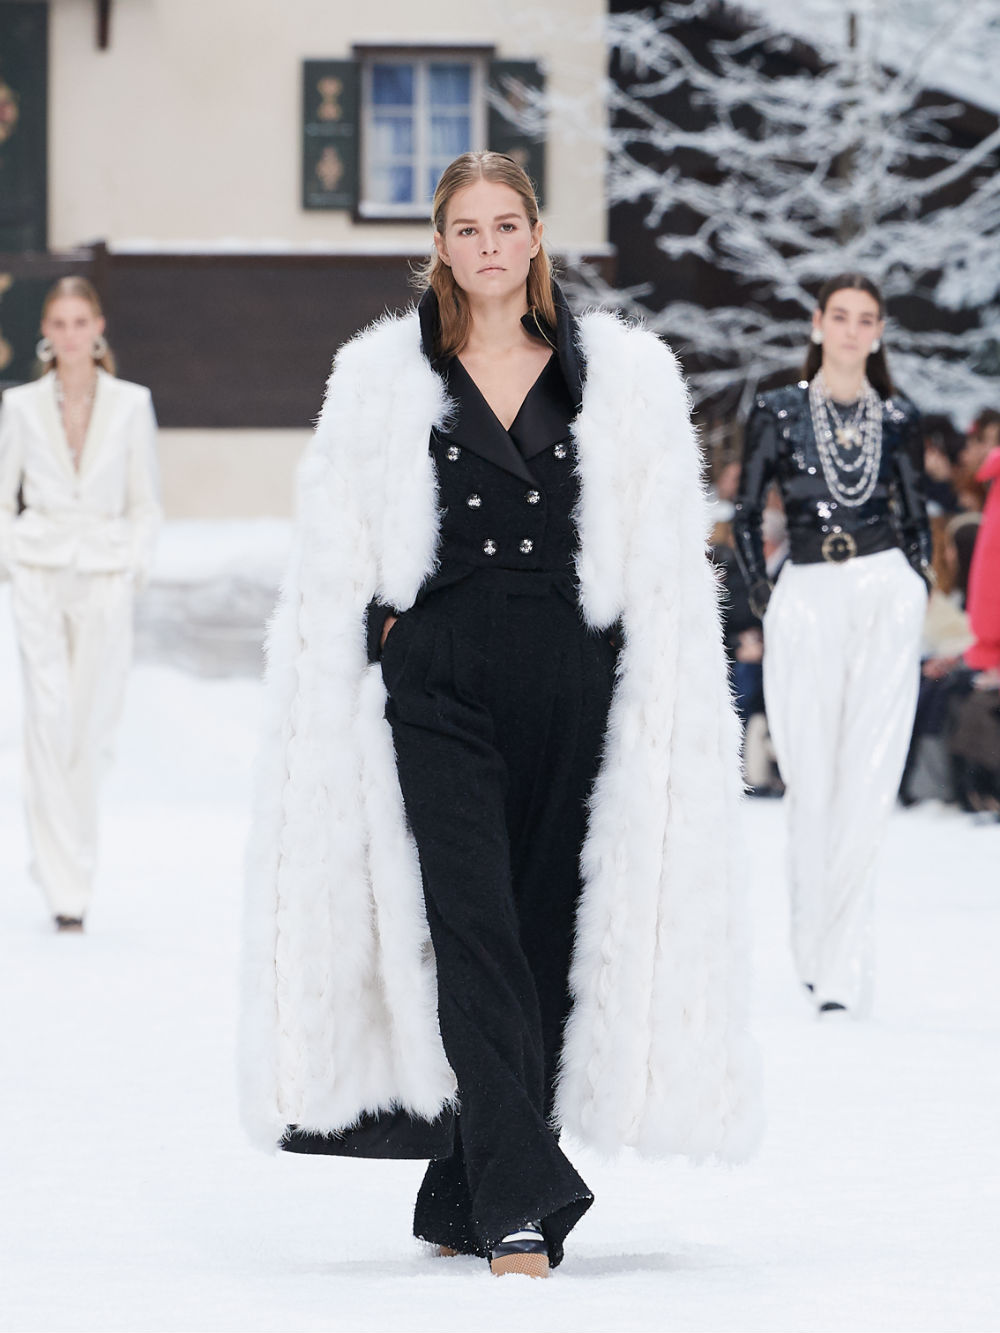 FALL-WINTER 201920 READY-TO-WEAR COLLECTION (44)